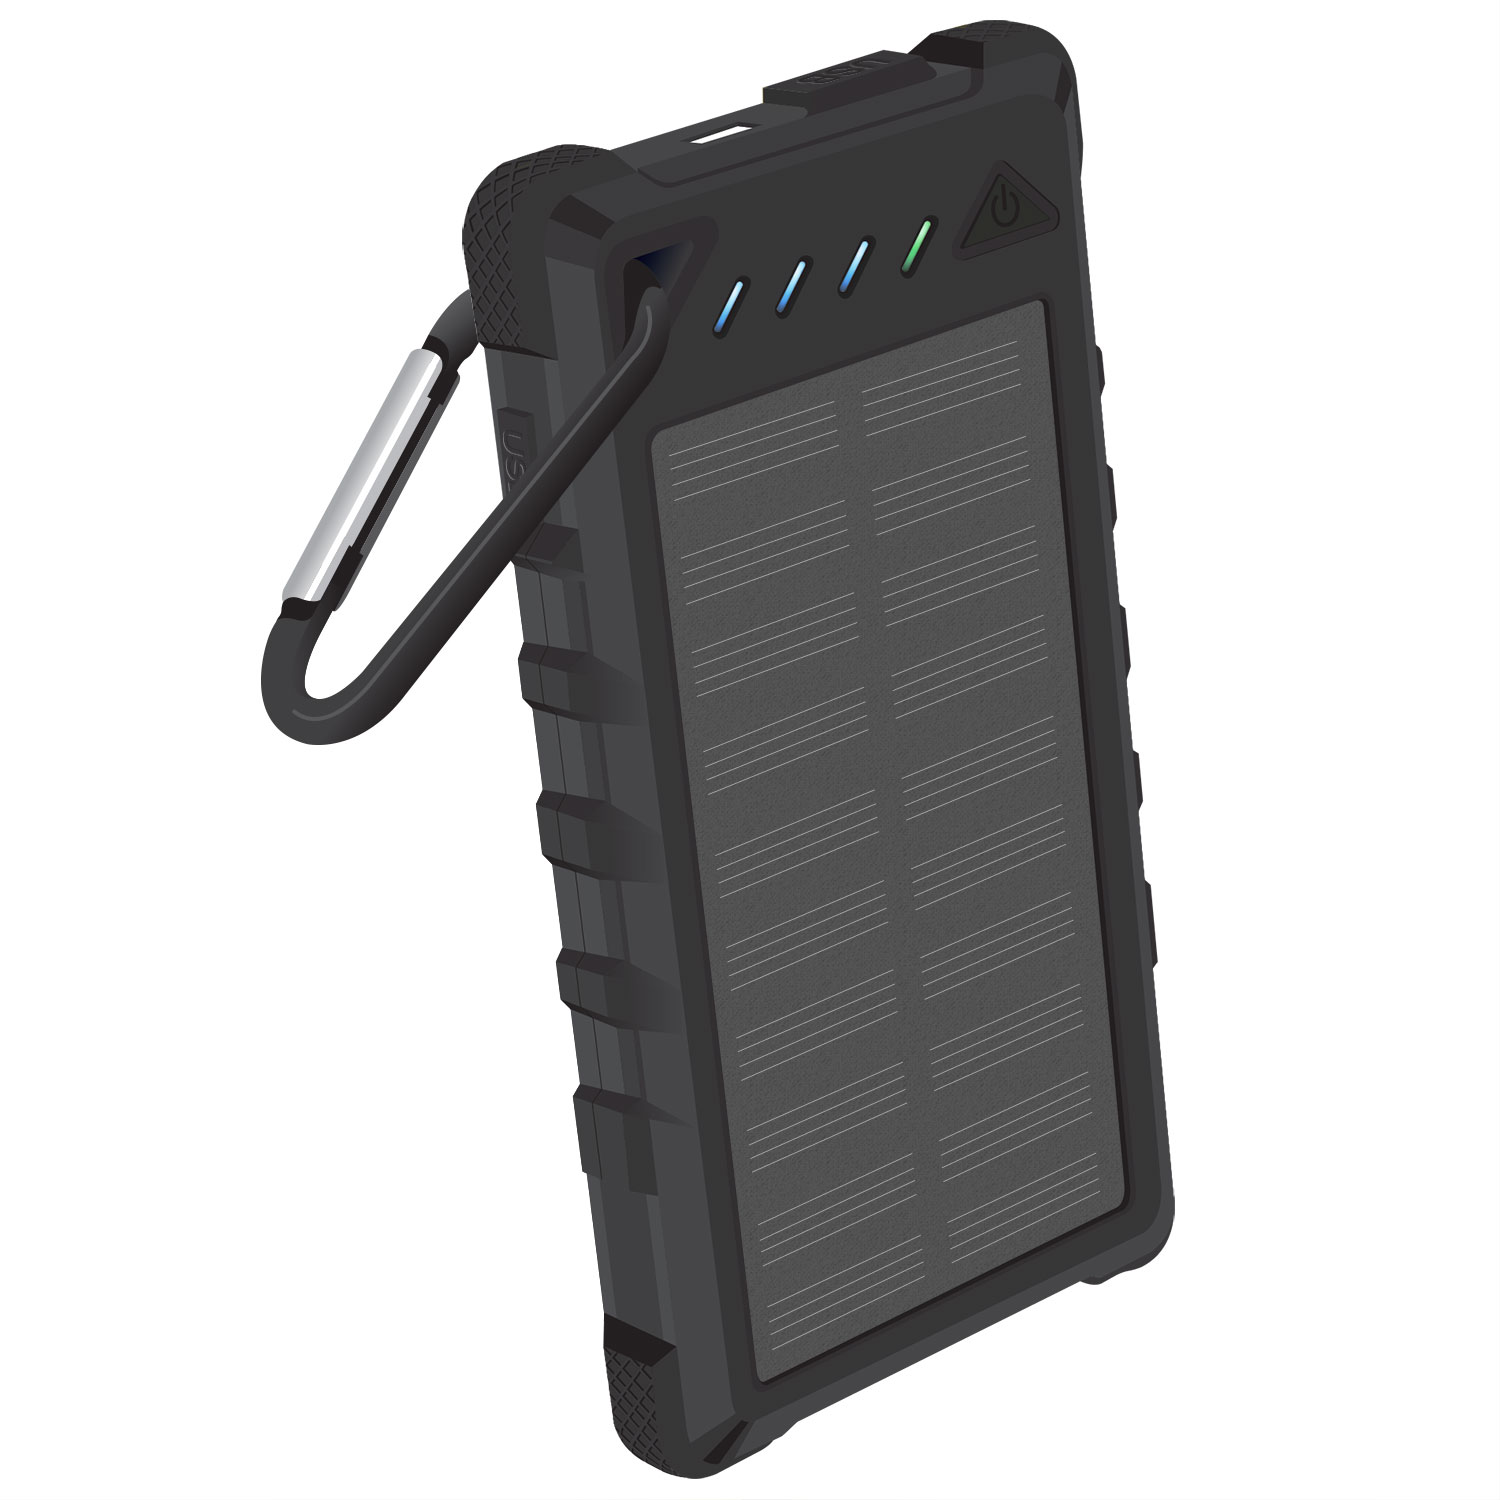 LG Spectrum Solar Powered Portable PowerBank Black